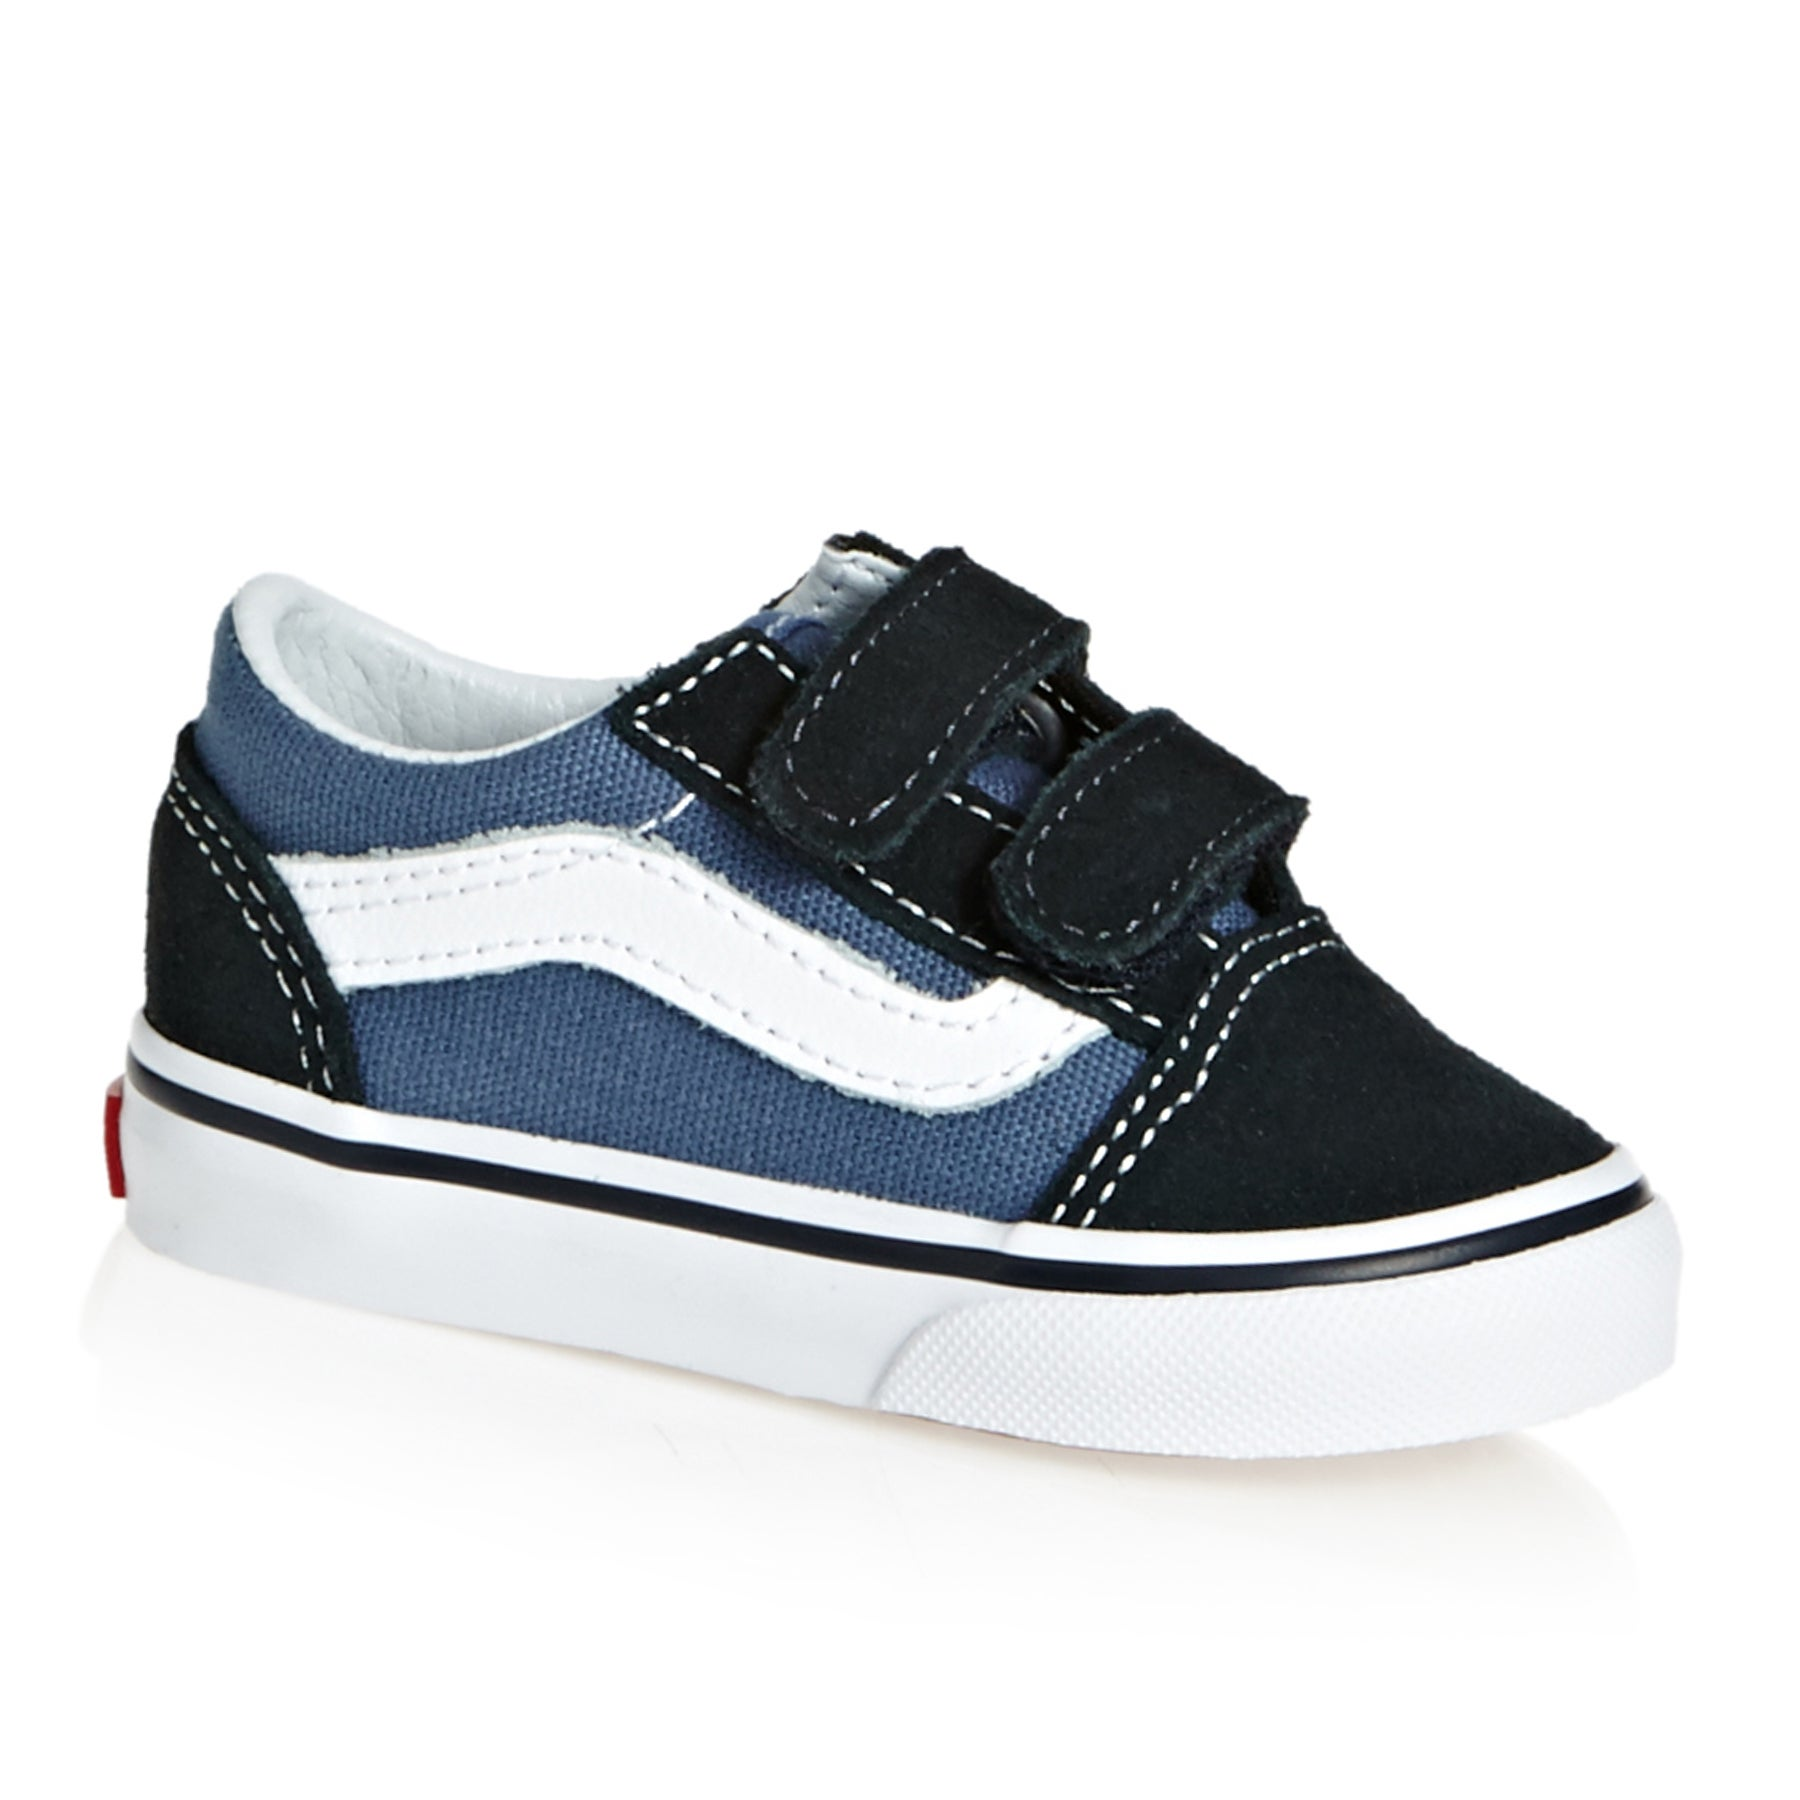 9164fab050 Vans Old Skool Kids Toddler Shoes available from Surfdome